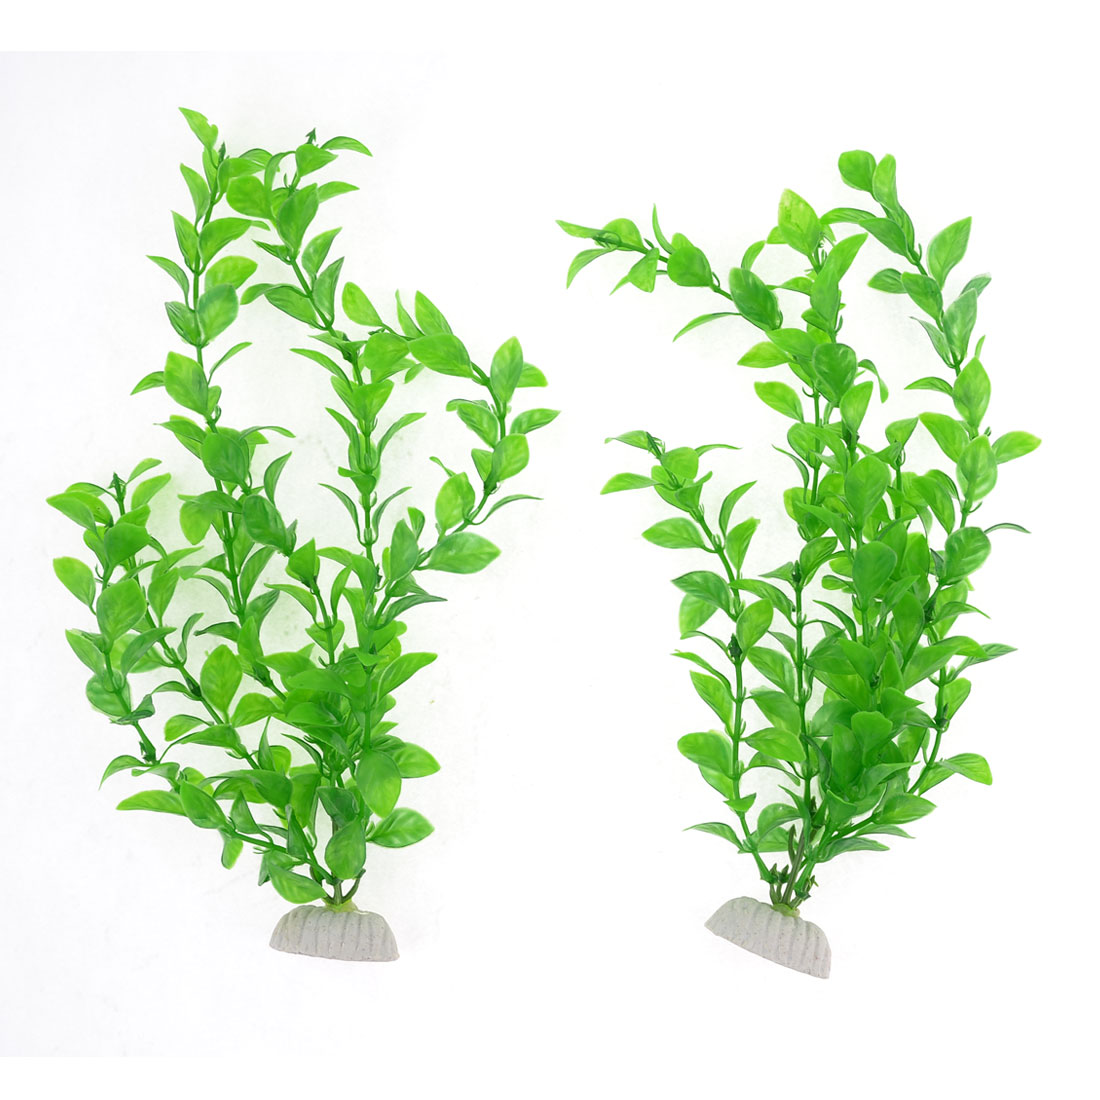 Plastic Green Underwater 29cm Grass Plant for Fish Tank Ornament 2 Pcs